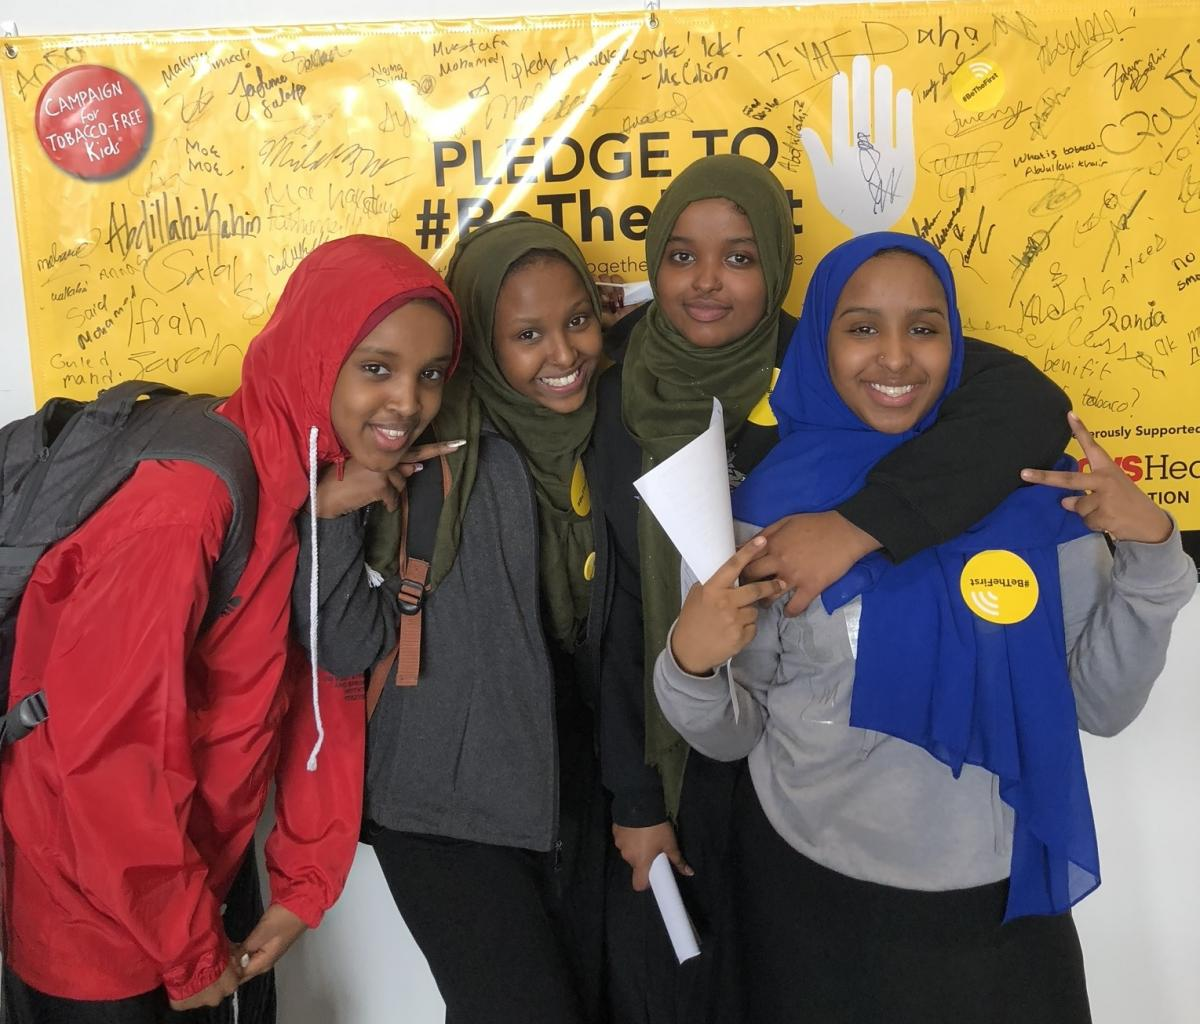 girls smiling in front of pledge wall